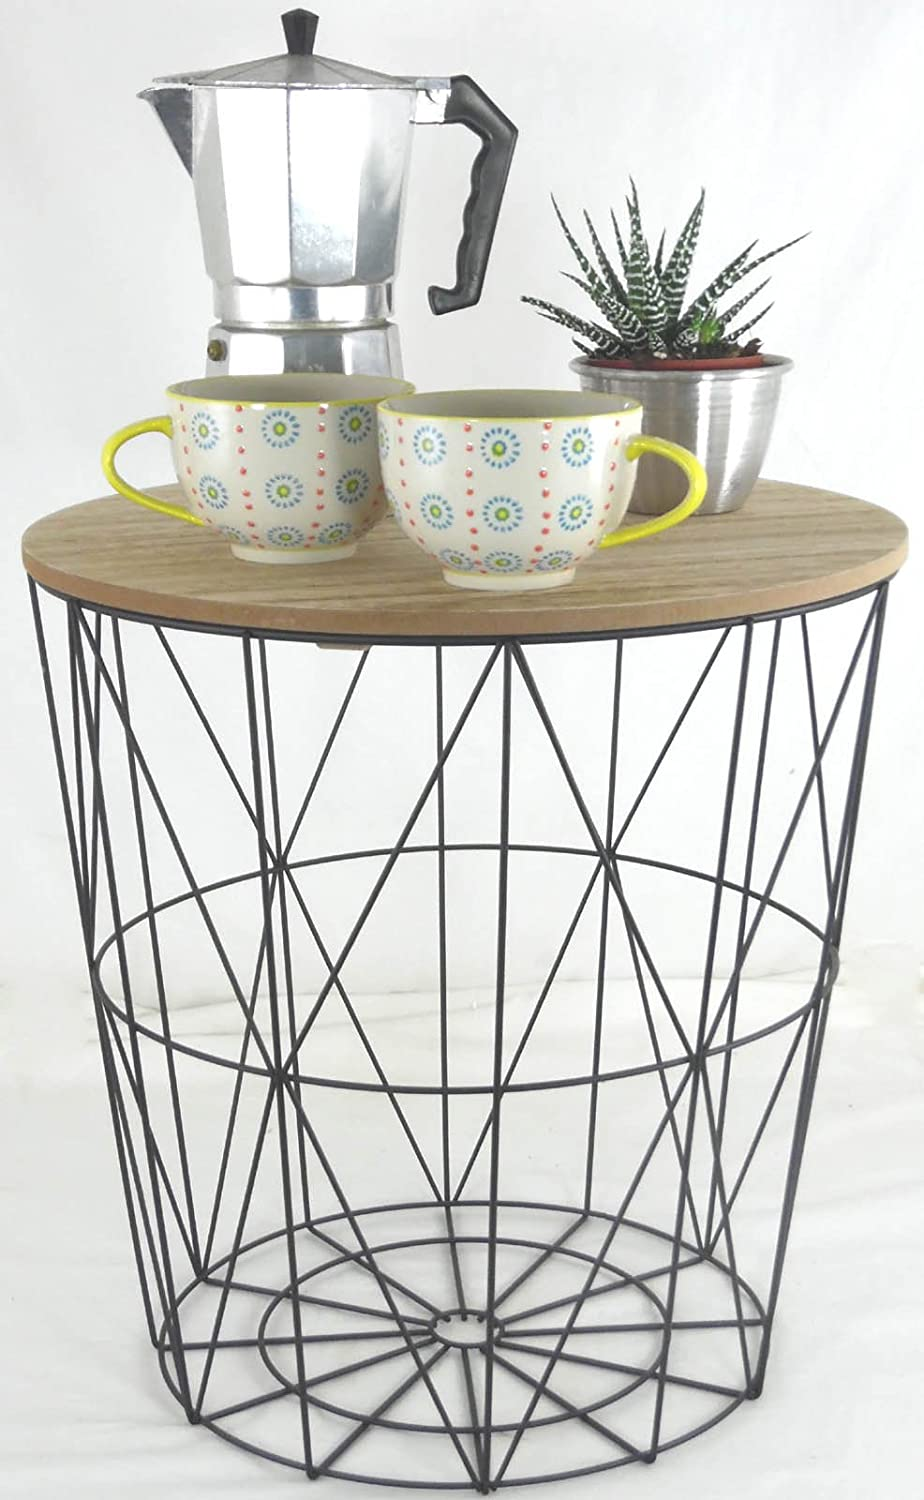 Metal wire small bedside occasional lamp table with lift off lid metal wire small bedside occasional lamp table with lift off lid amazon kitchen home greentooth Choice Image